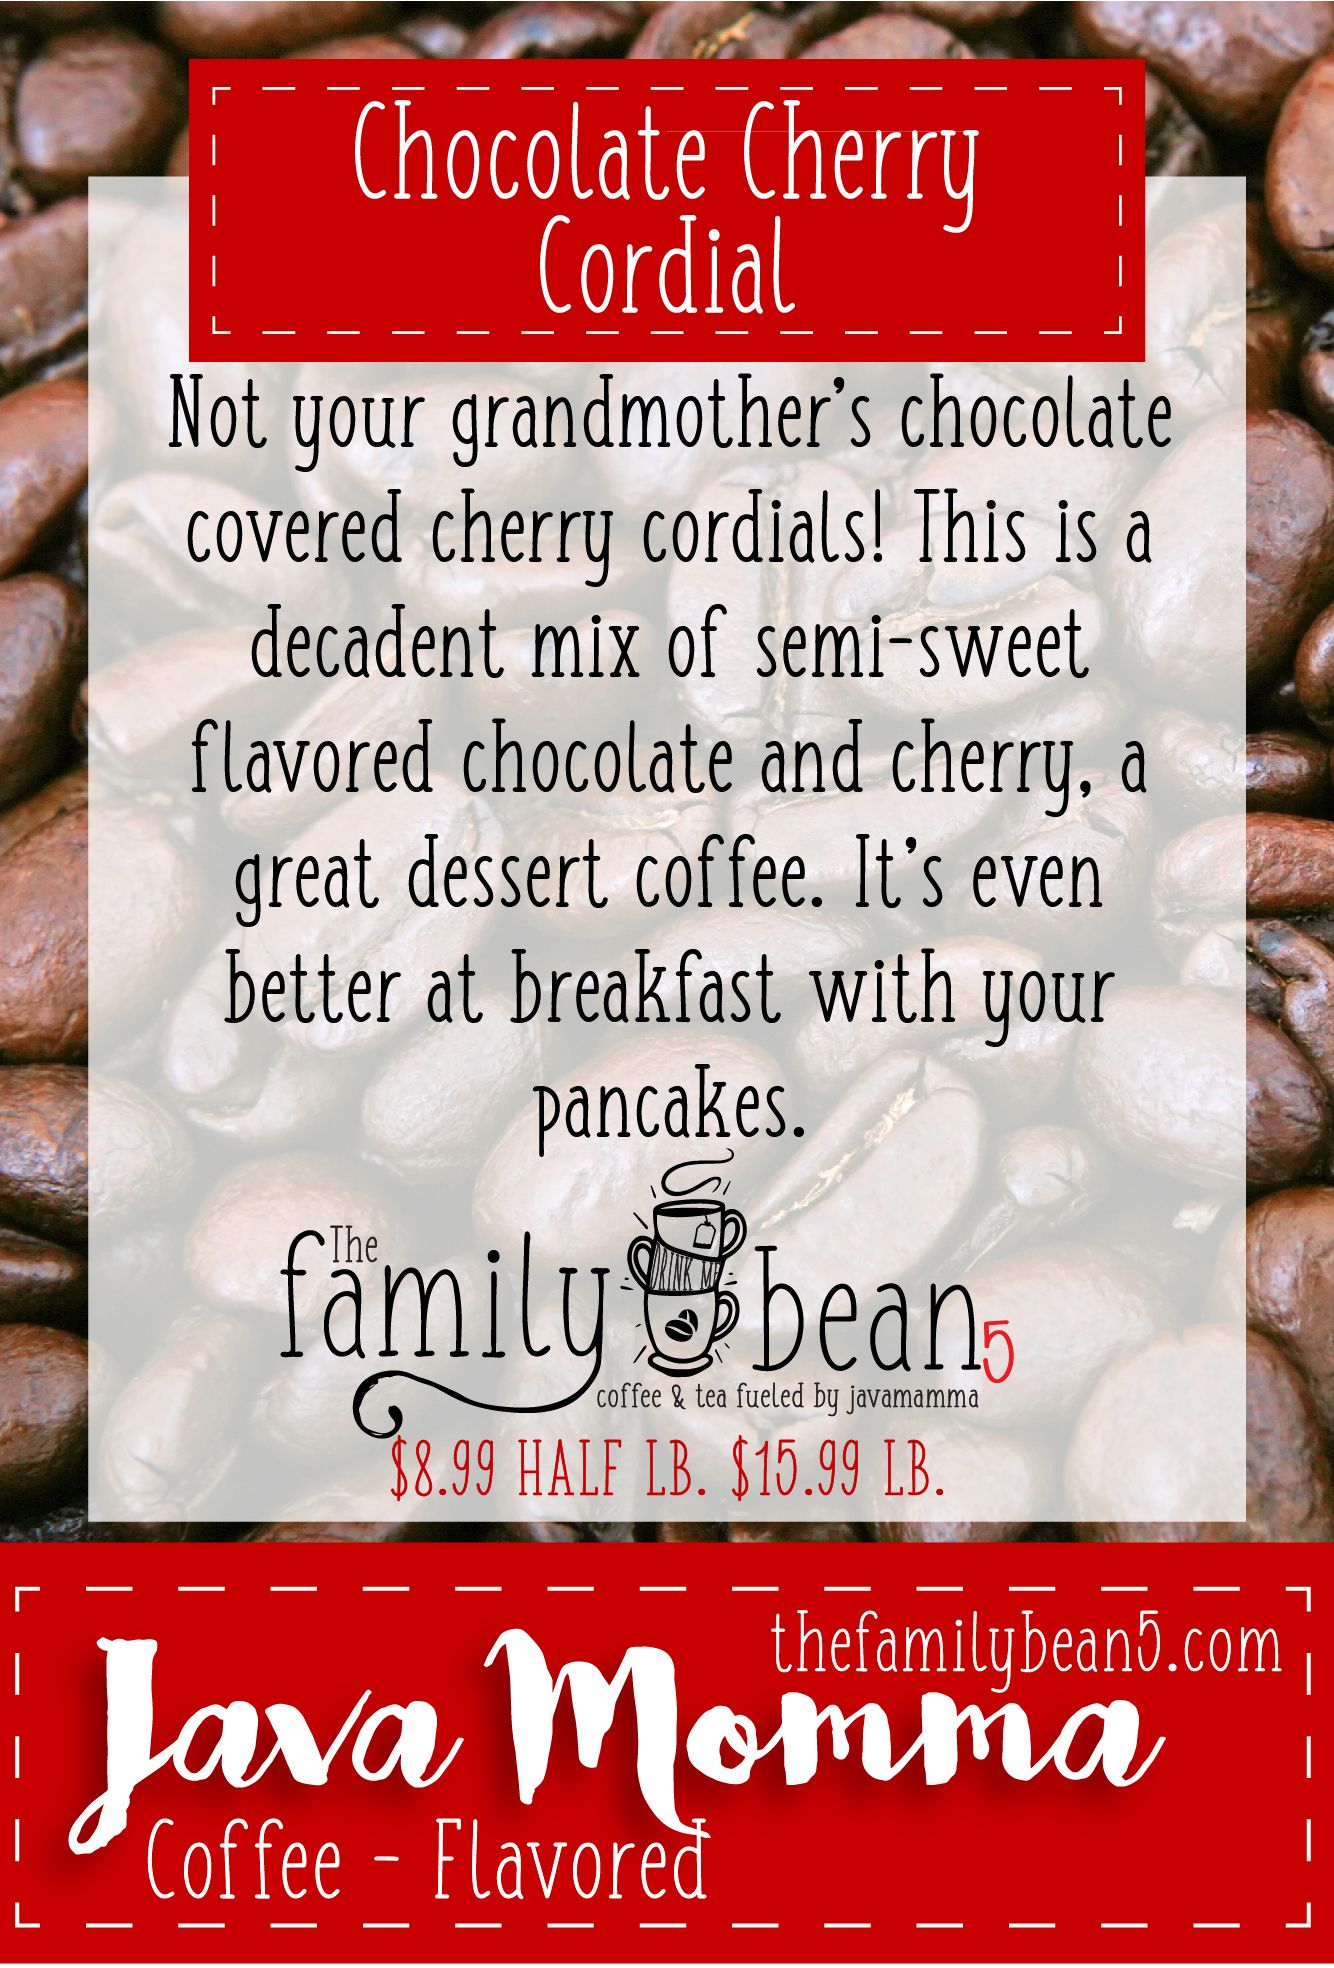 Chocolate Cherry Cordial Flavored Coffee From Javamomma